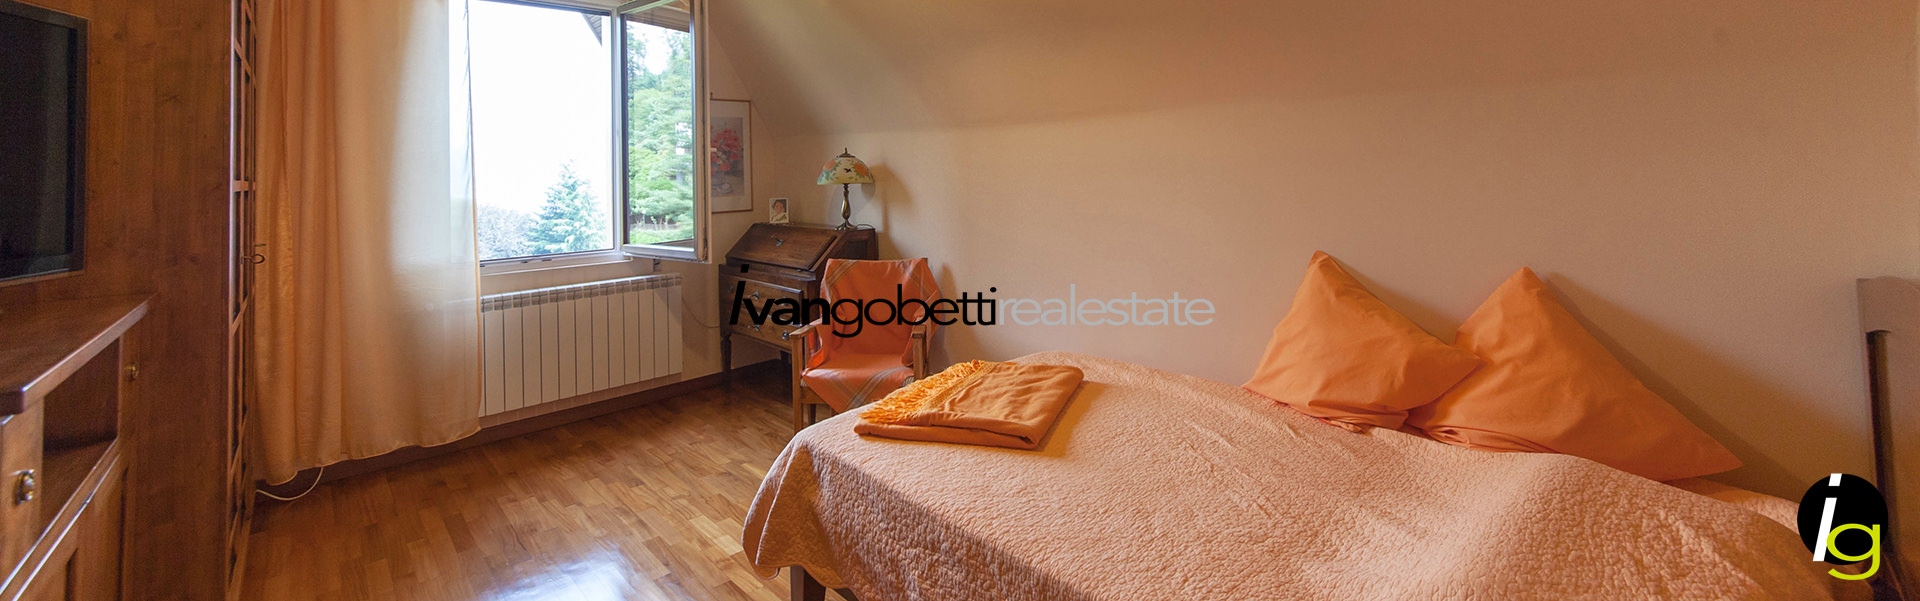 Villa for sale overlooking Lake Maggiore, Stresa